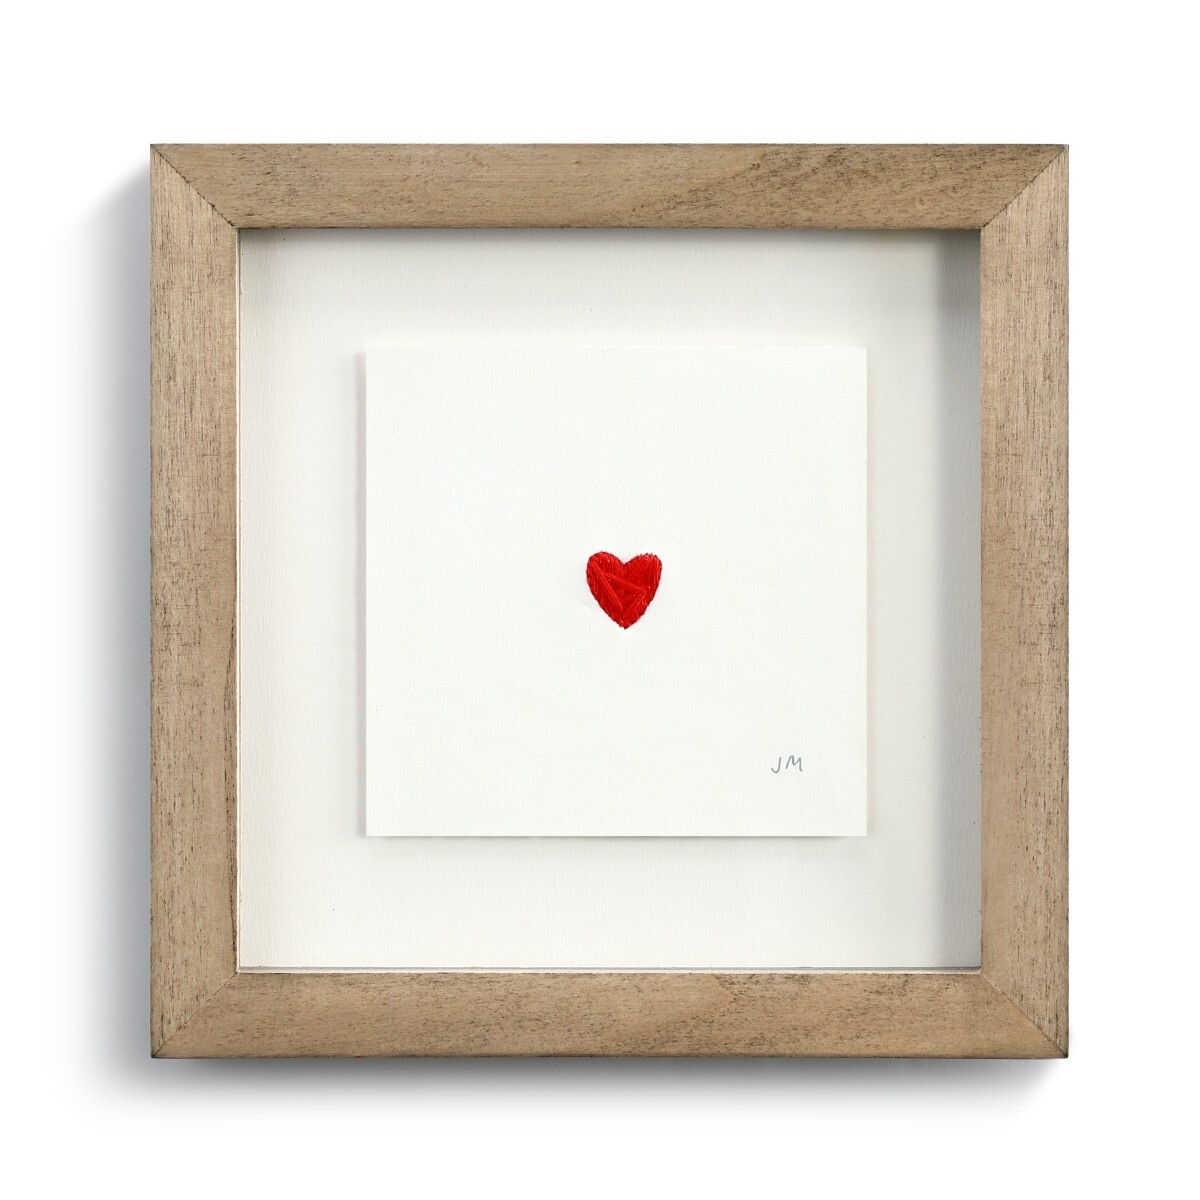 Stitched Heart Framed Art